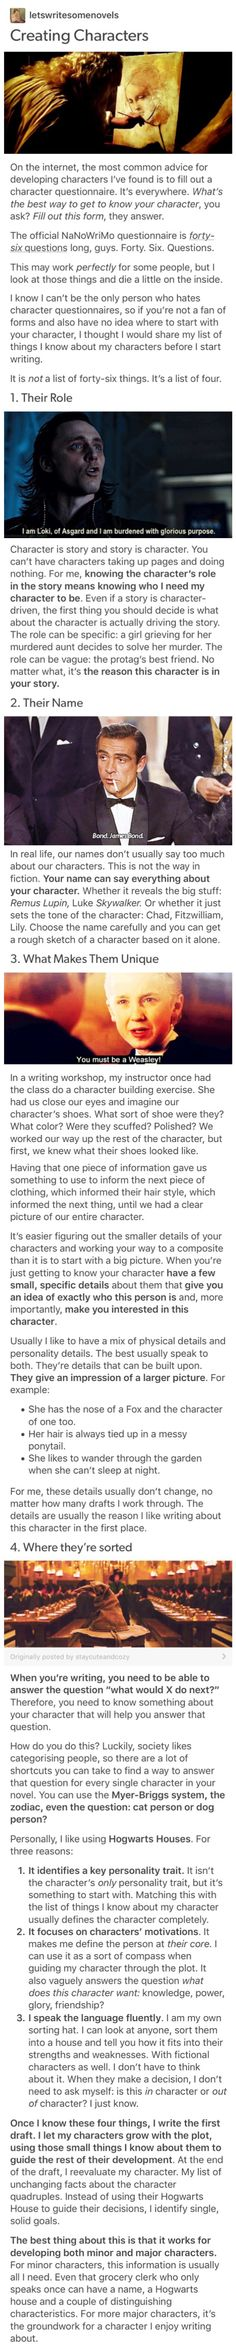 If you're having issues creating or developing characters, this is a good place to start. - Alex P.